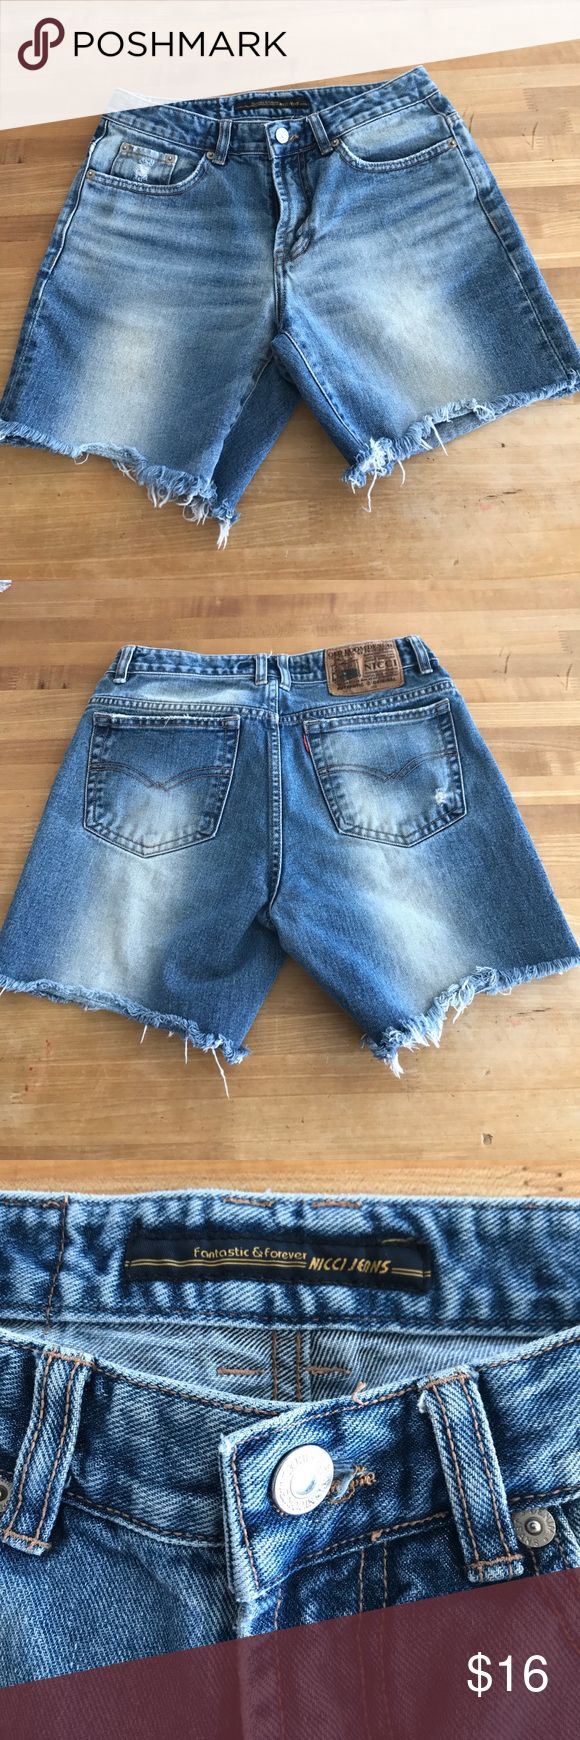 54 Best My Posh Closet Images On Pinterest Abercrombie Fitch Baby Happy Body Fit Pants L30 Nicci Jeans Denim Shorts 27 Waist Jean